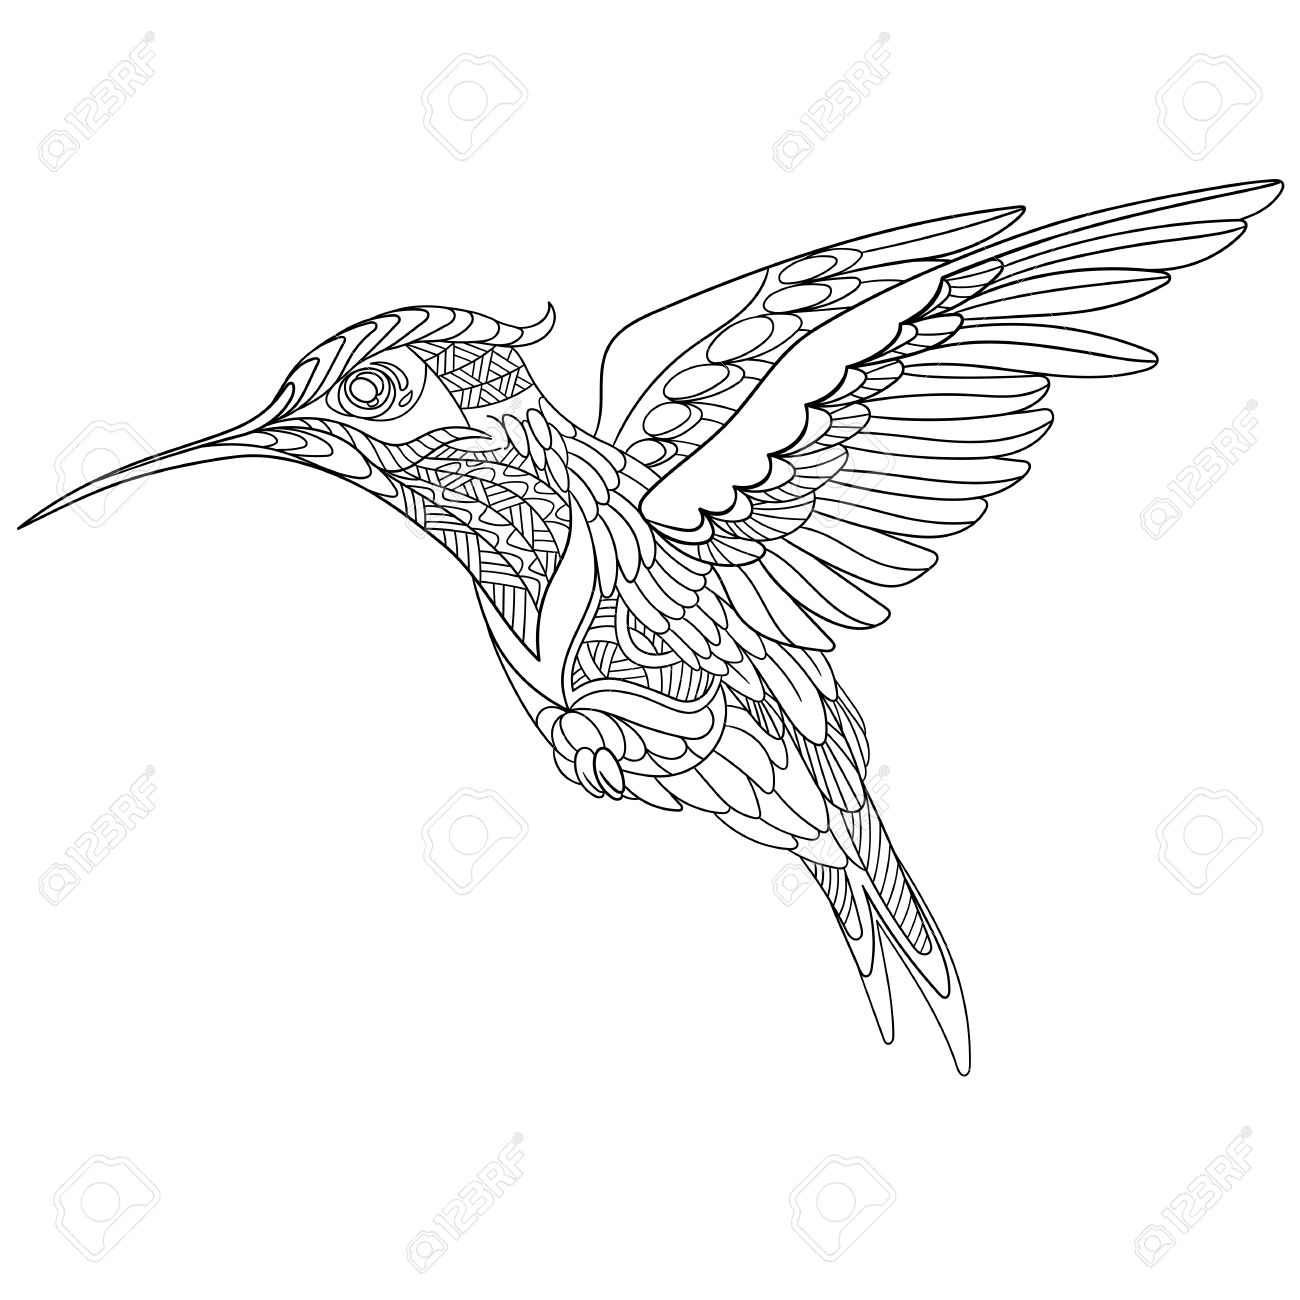 Stylized Cartoon Hummingbird, Isolated On White Background. Sketch For  Adult Antistress Coloring Page.